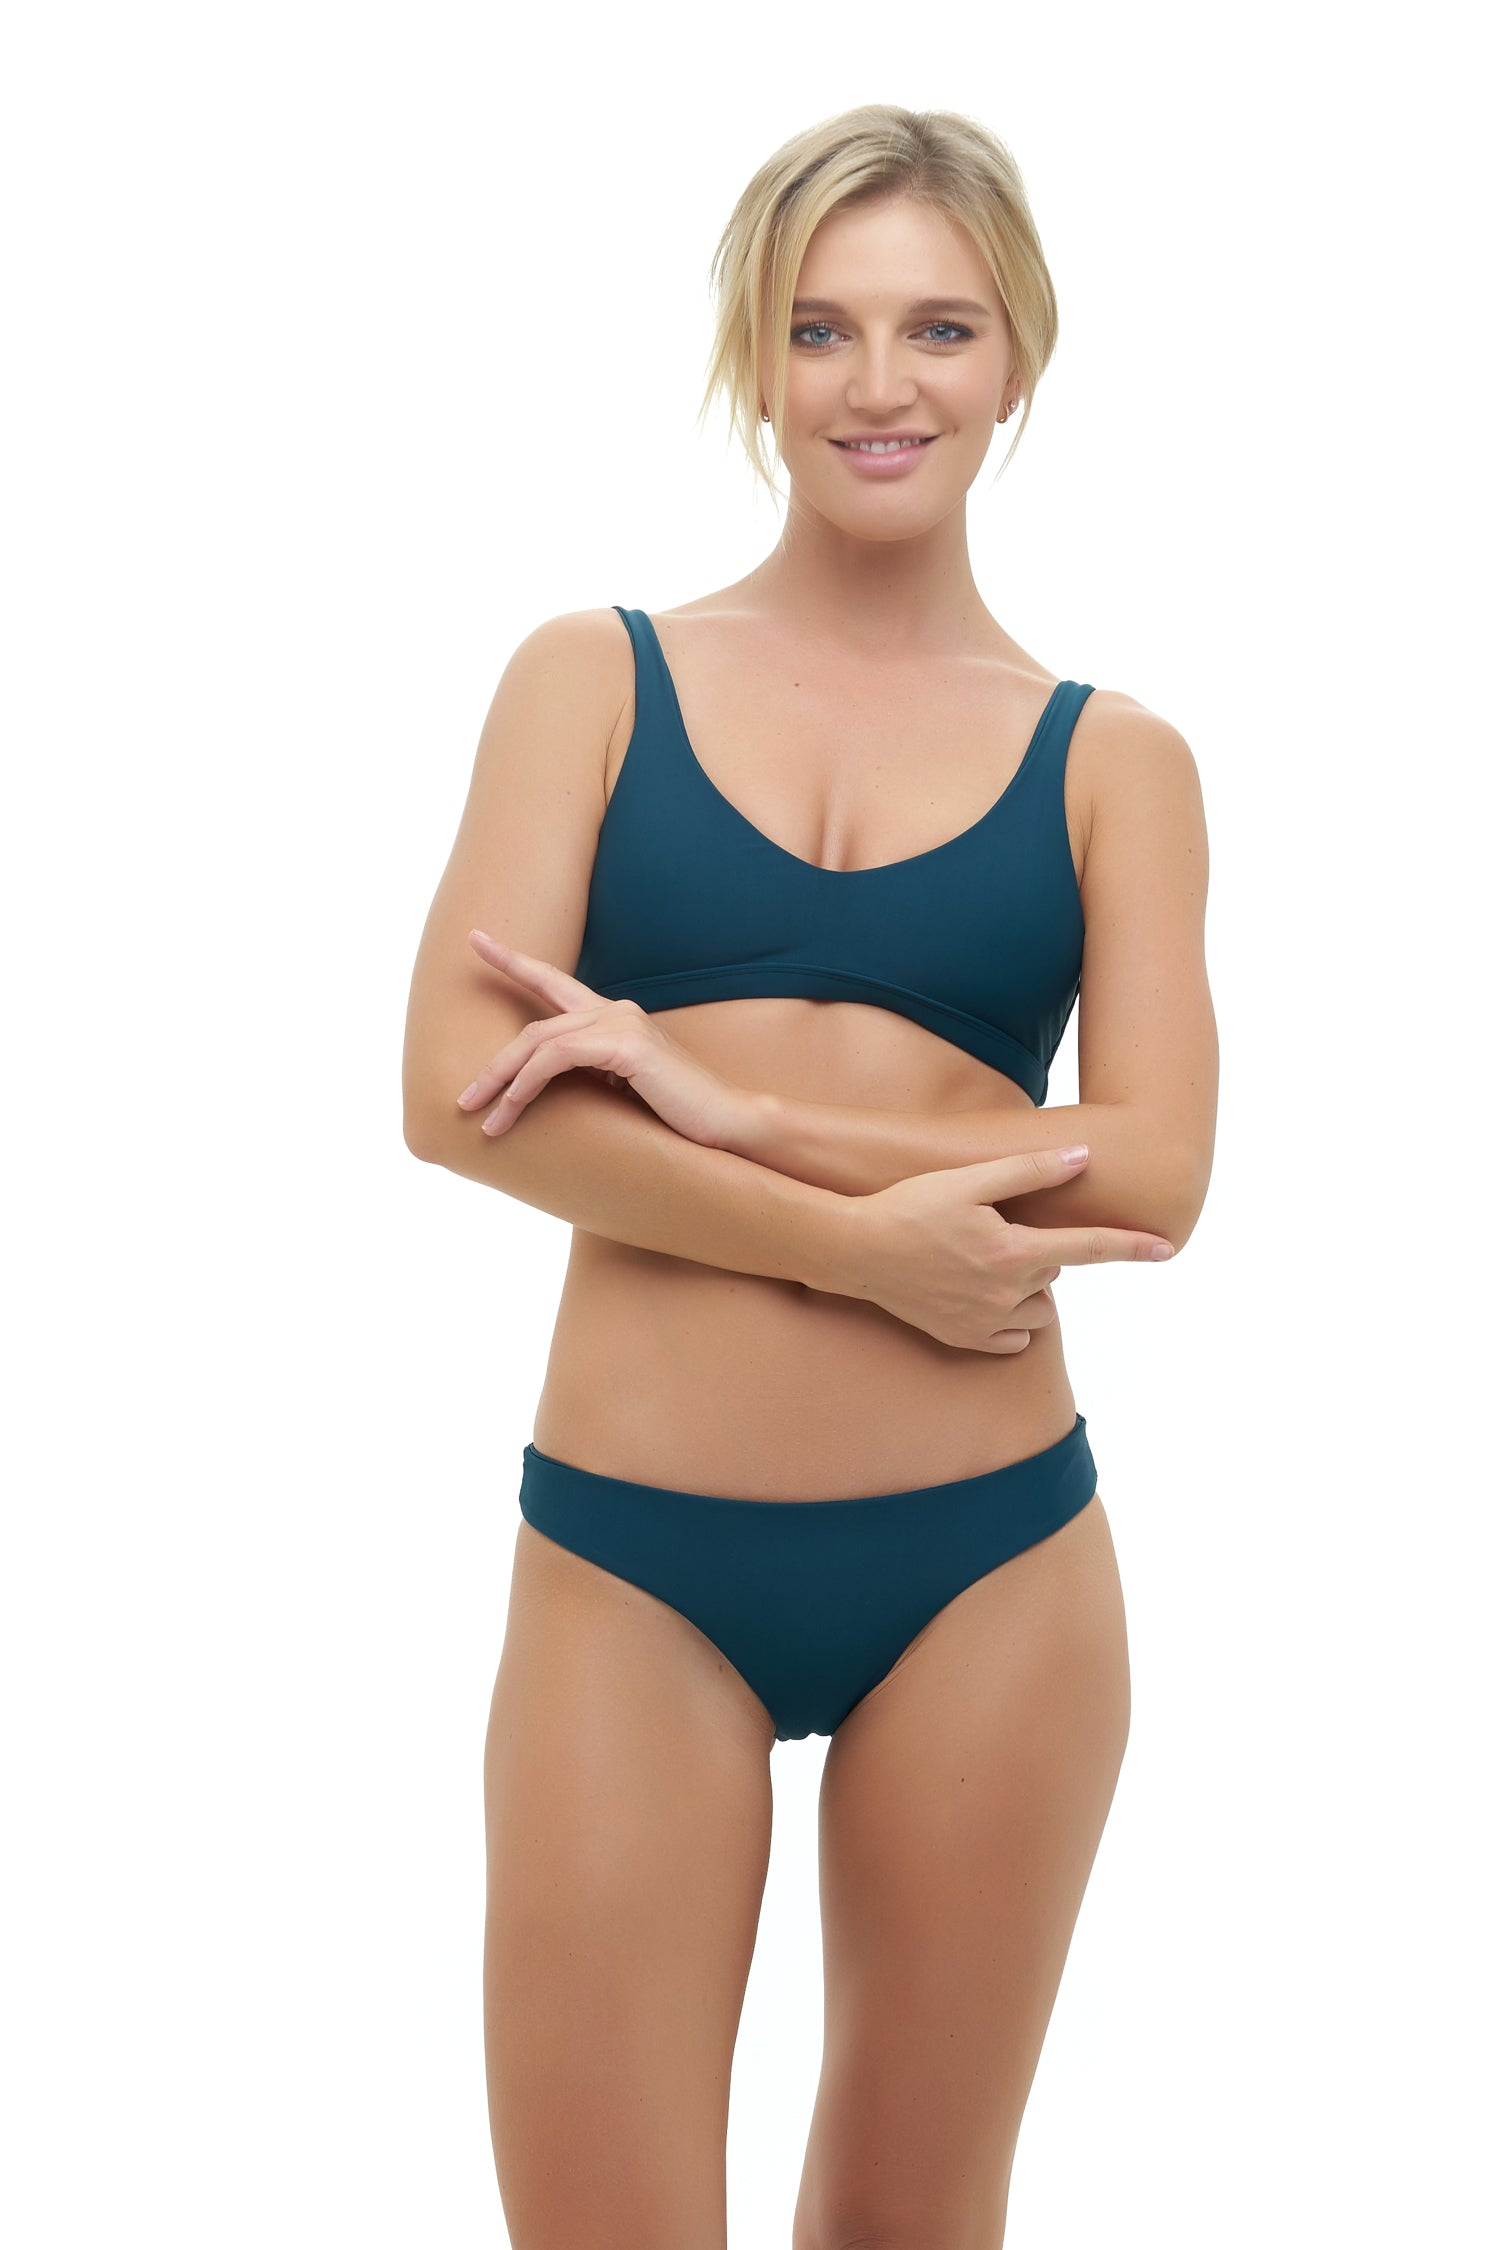 Storm Swimwear - Cottesloe - Top in Jungle Green